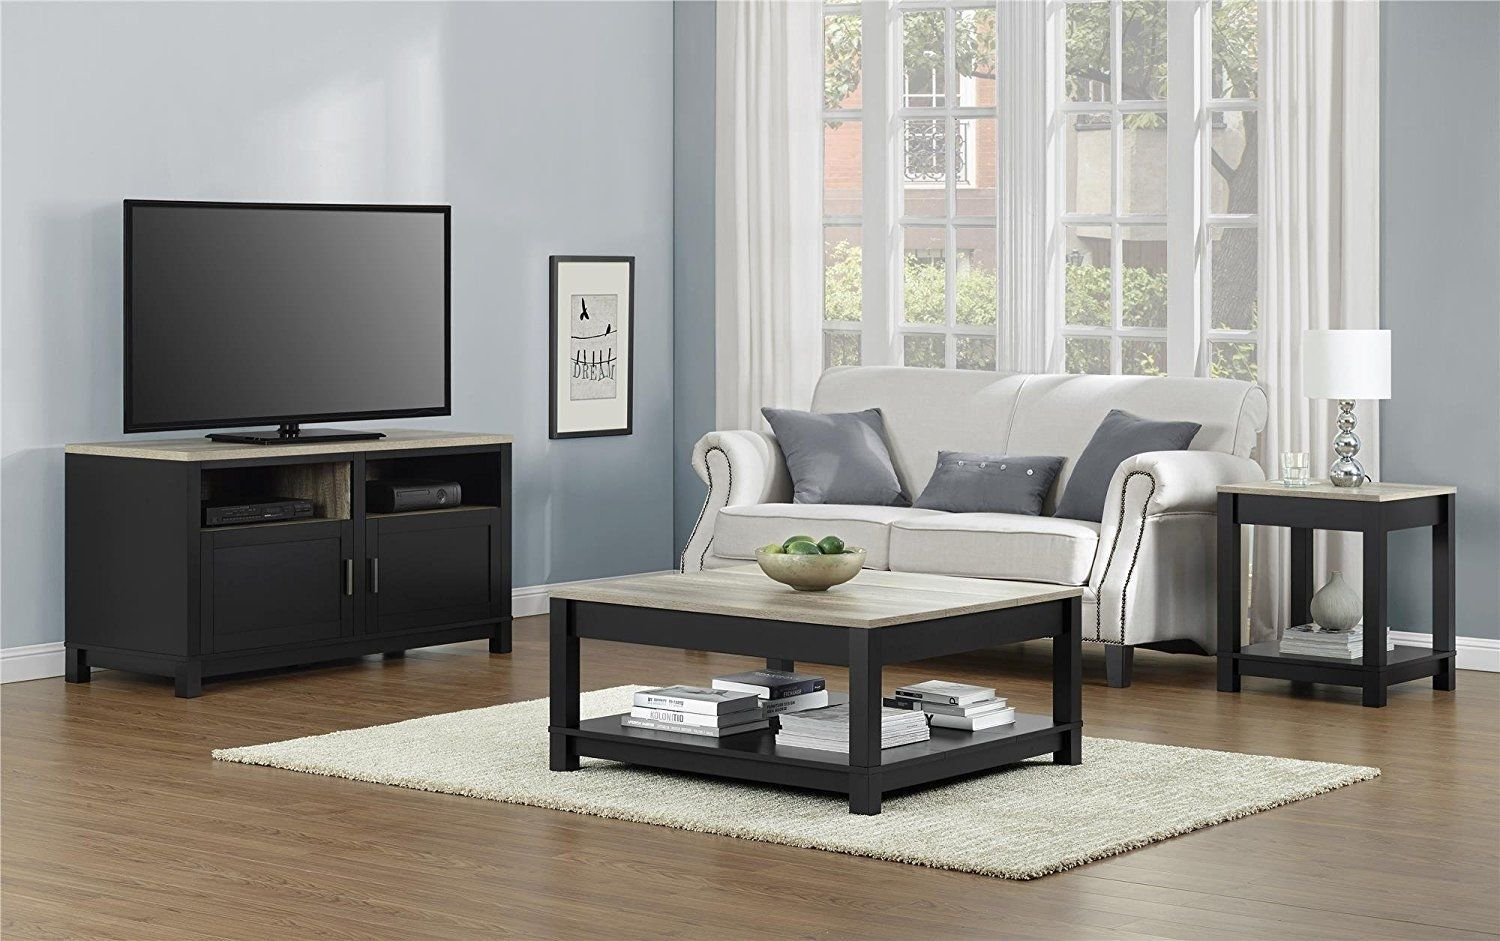 Altra Furniture Carver Coffee Table Living Room Black Square Box Shaped Cube